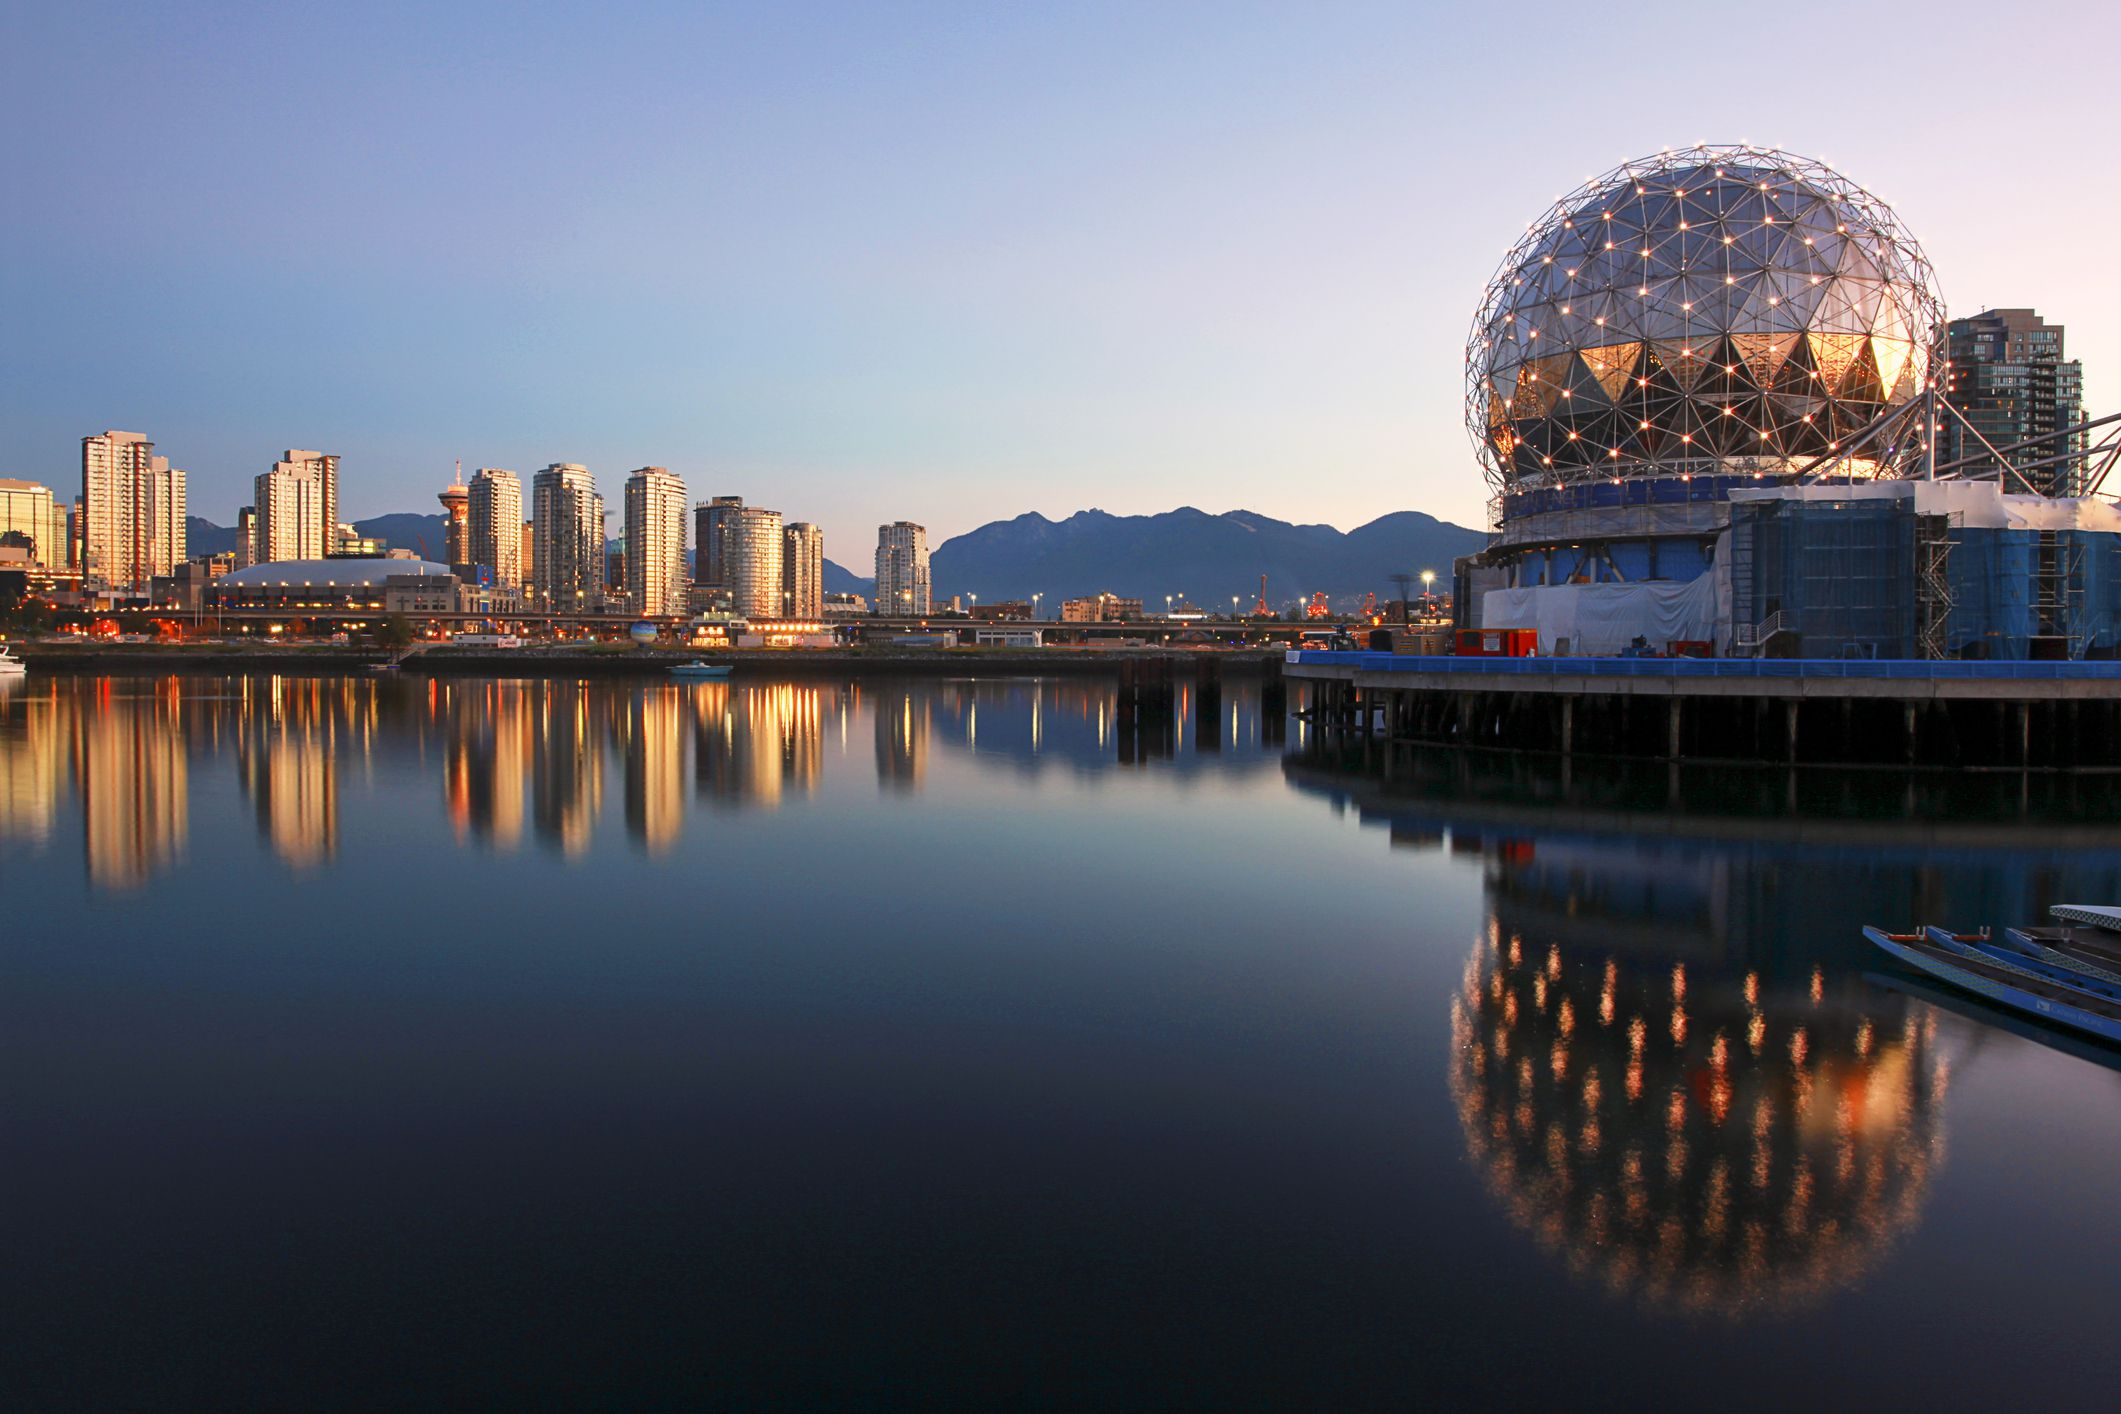 Science World, Vancouver: The Complete Guide